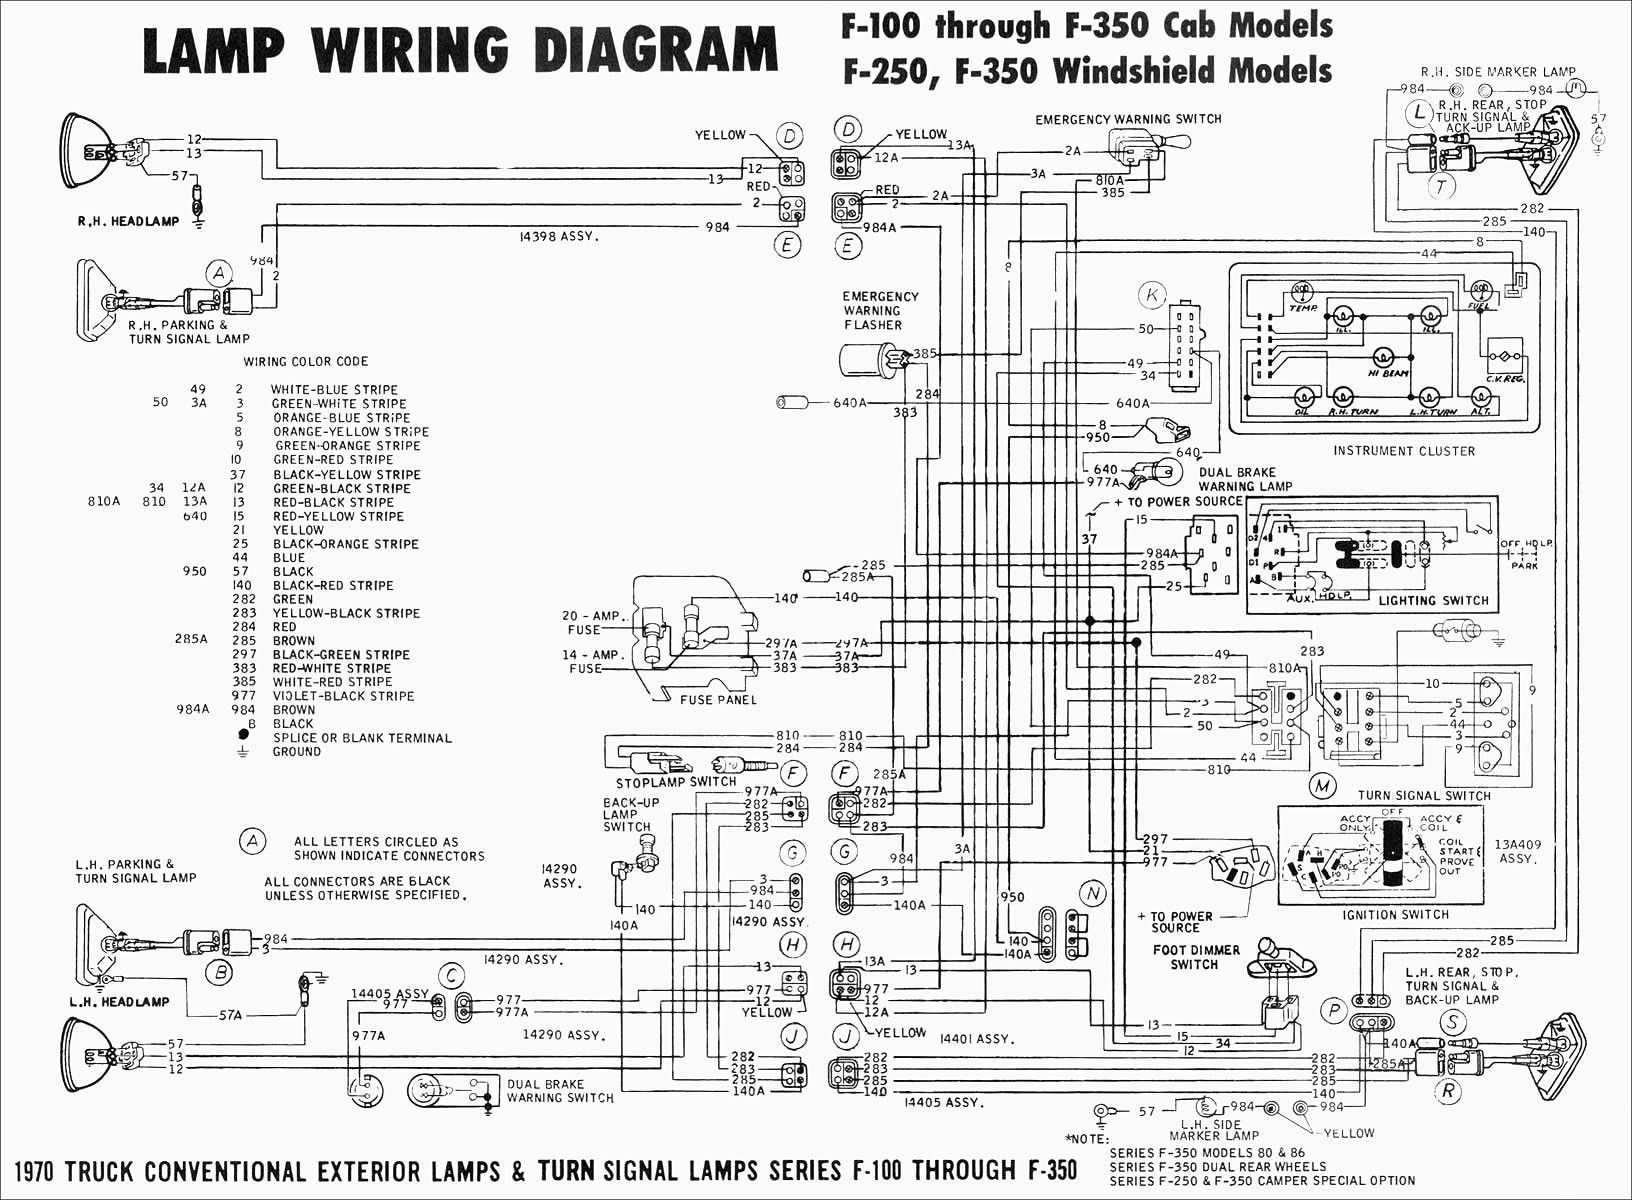 Unique Wiring Diagram For Ignition Switch Trailer Wiring Diagram Electrical Wiring Diagram Diagram